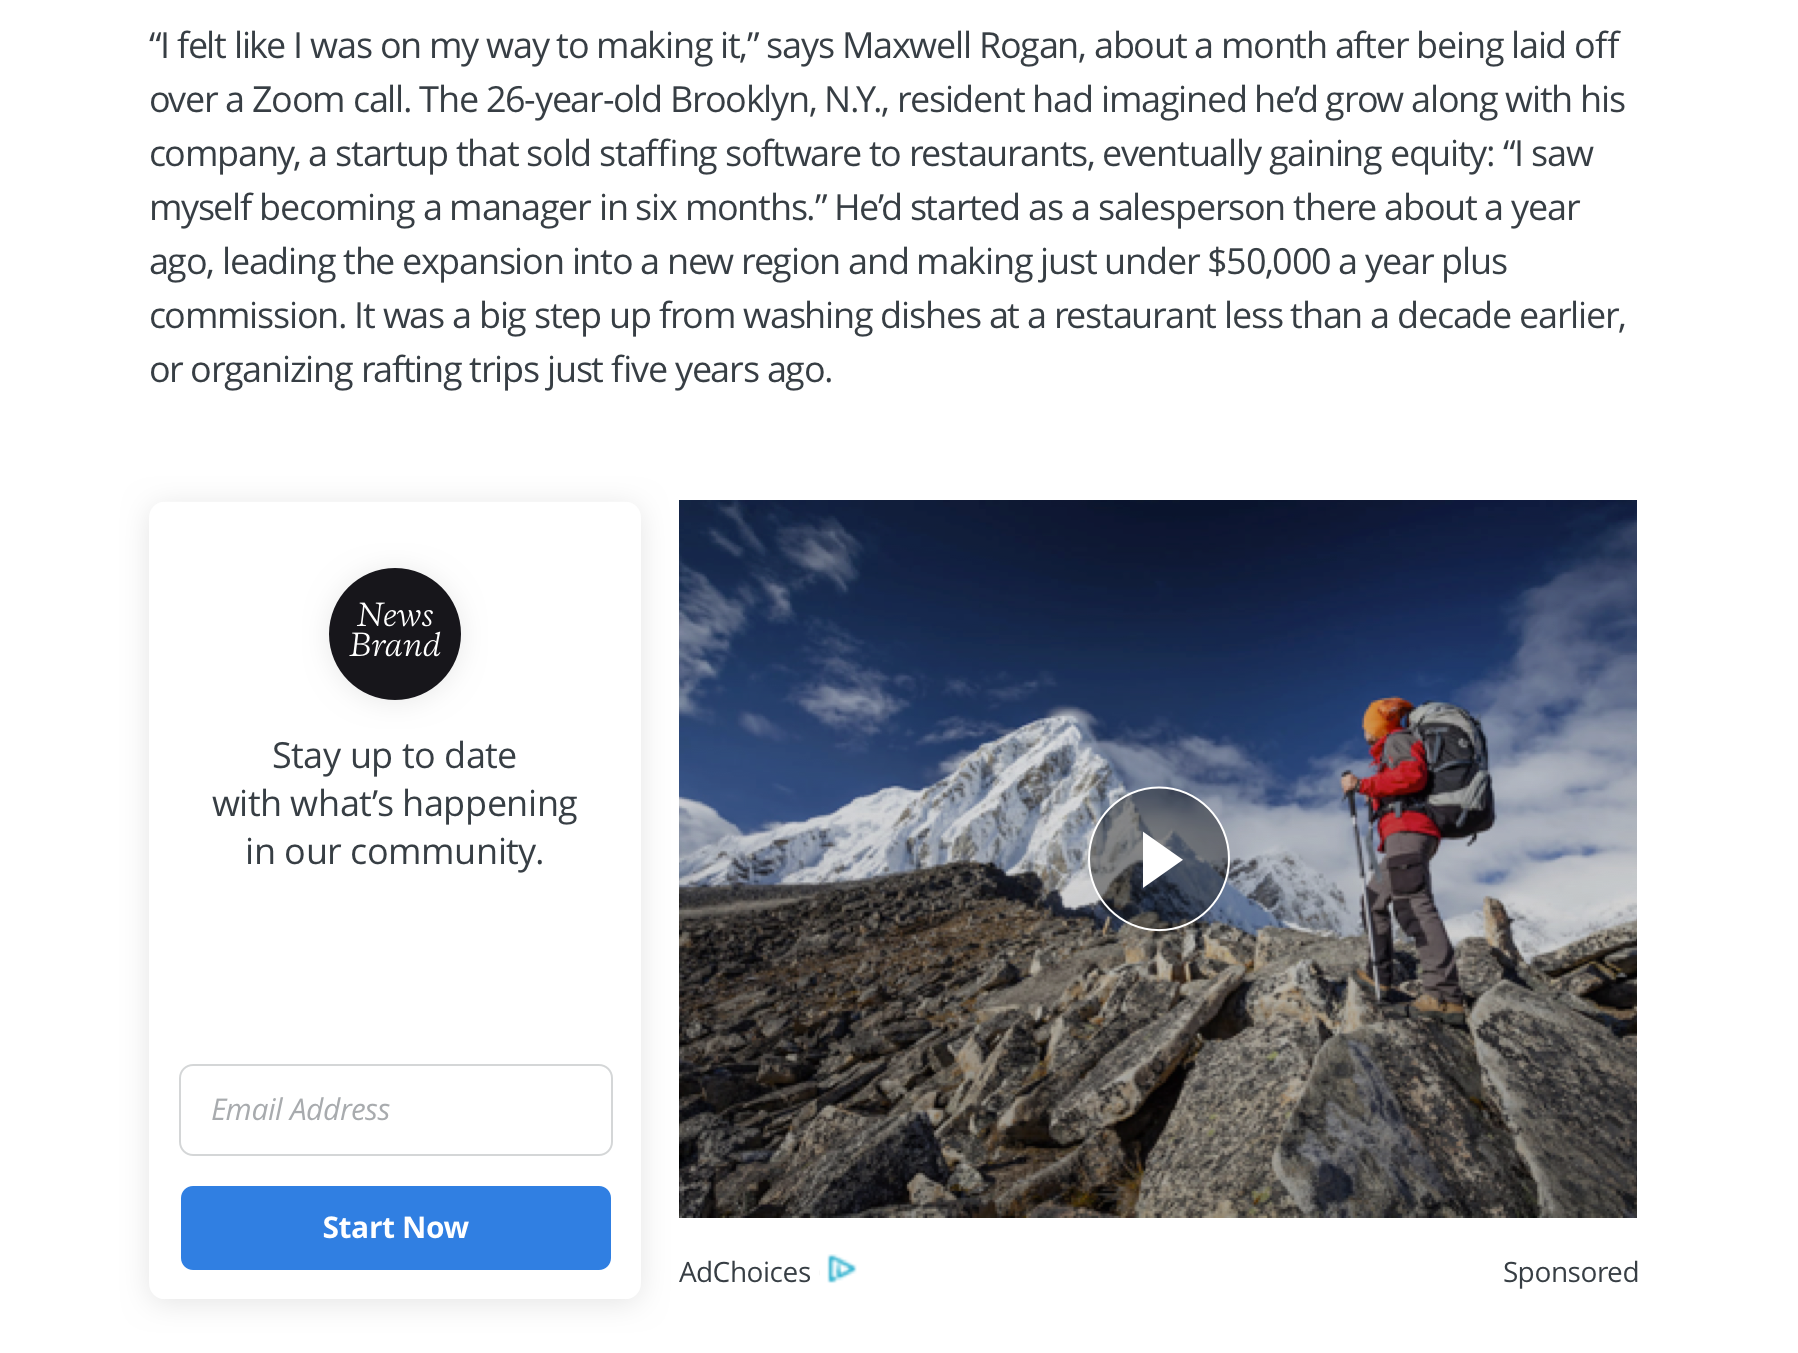 Collecting newsletter subscribers using Spotlight